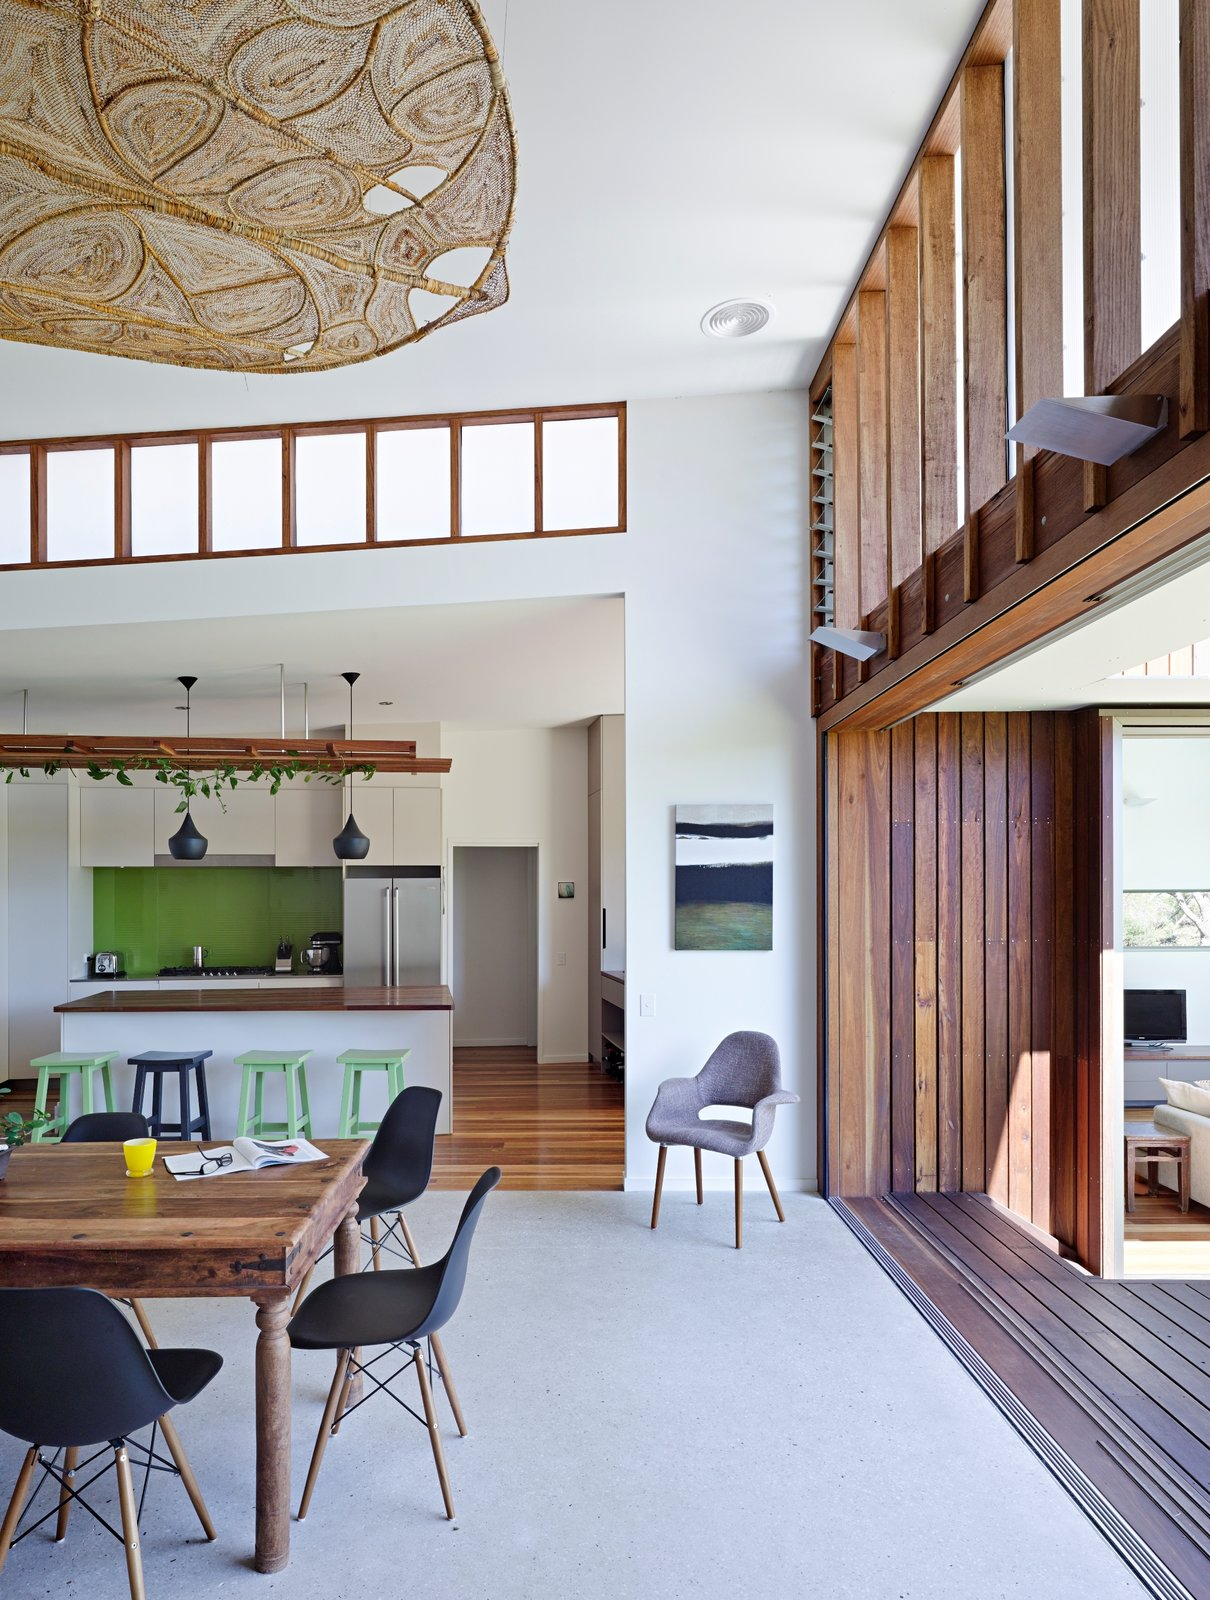 Dining Room, Ceiling Lighting, Table, Chair, Dark Hardwood Floor, Bar, Stools, and Rug Floor  Photo 4 of 10 in Vegetation Cocoons This Tranquil Beach House in Australia